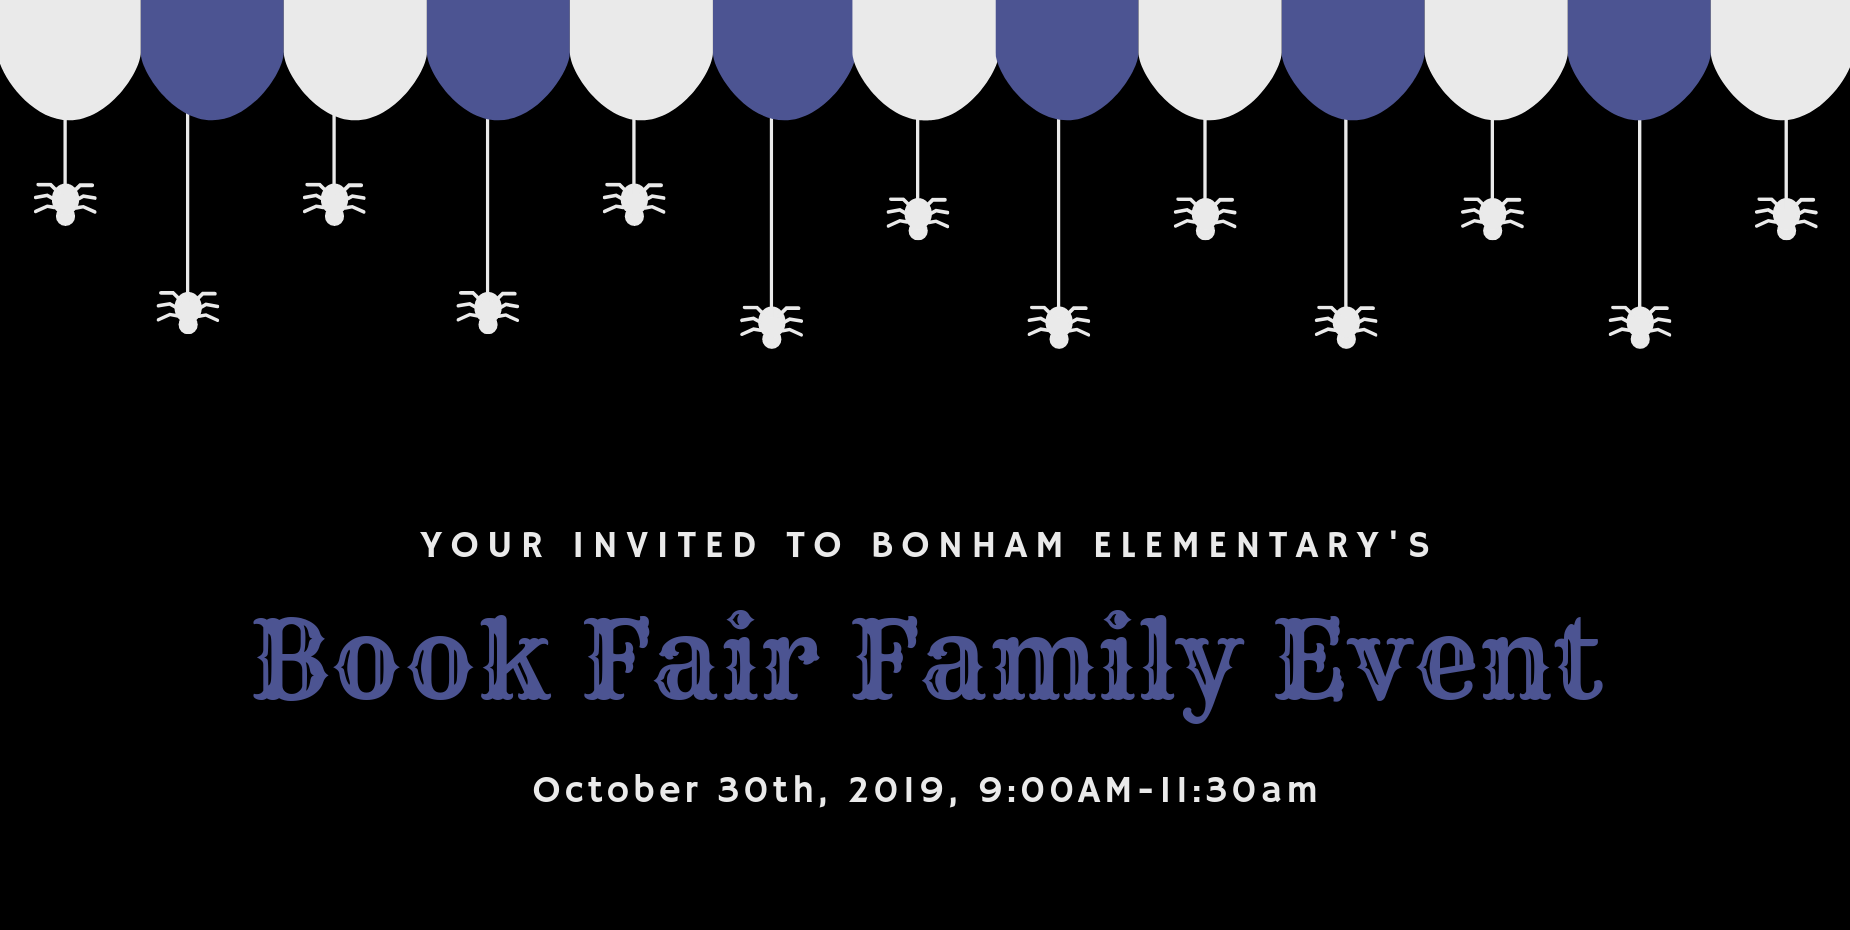 Family Event Oct 30th, 2019